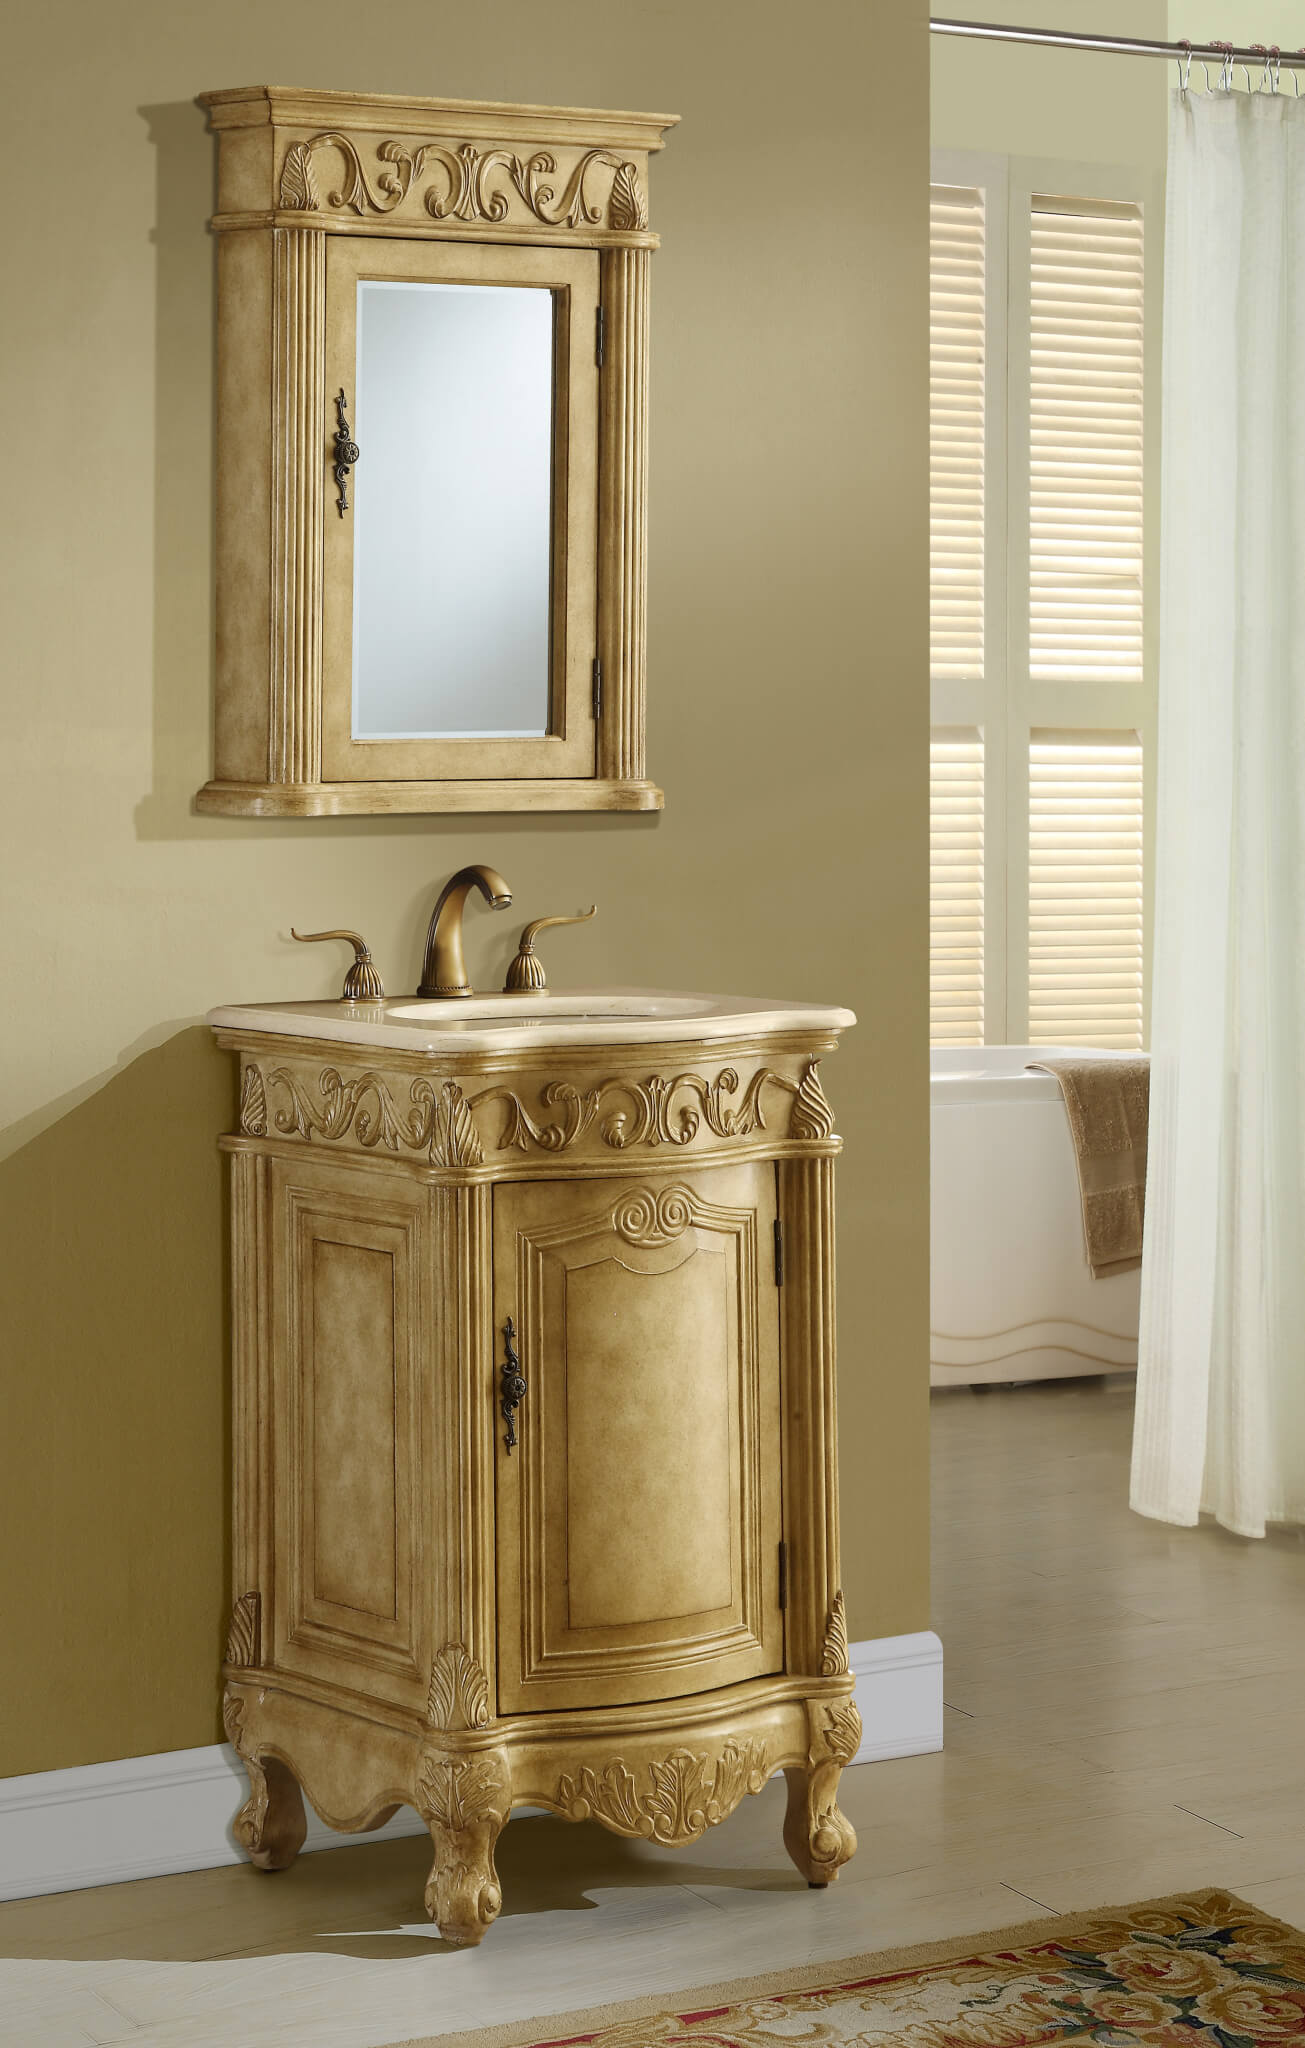 21u2033 Tan Bathroom Vanity